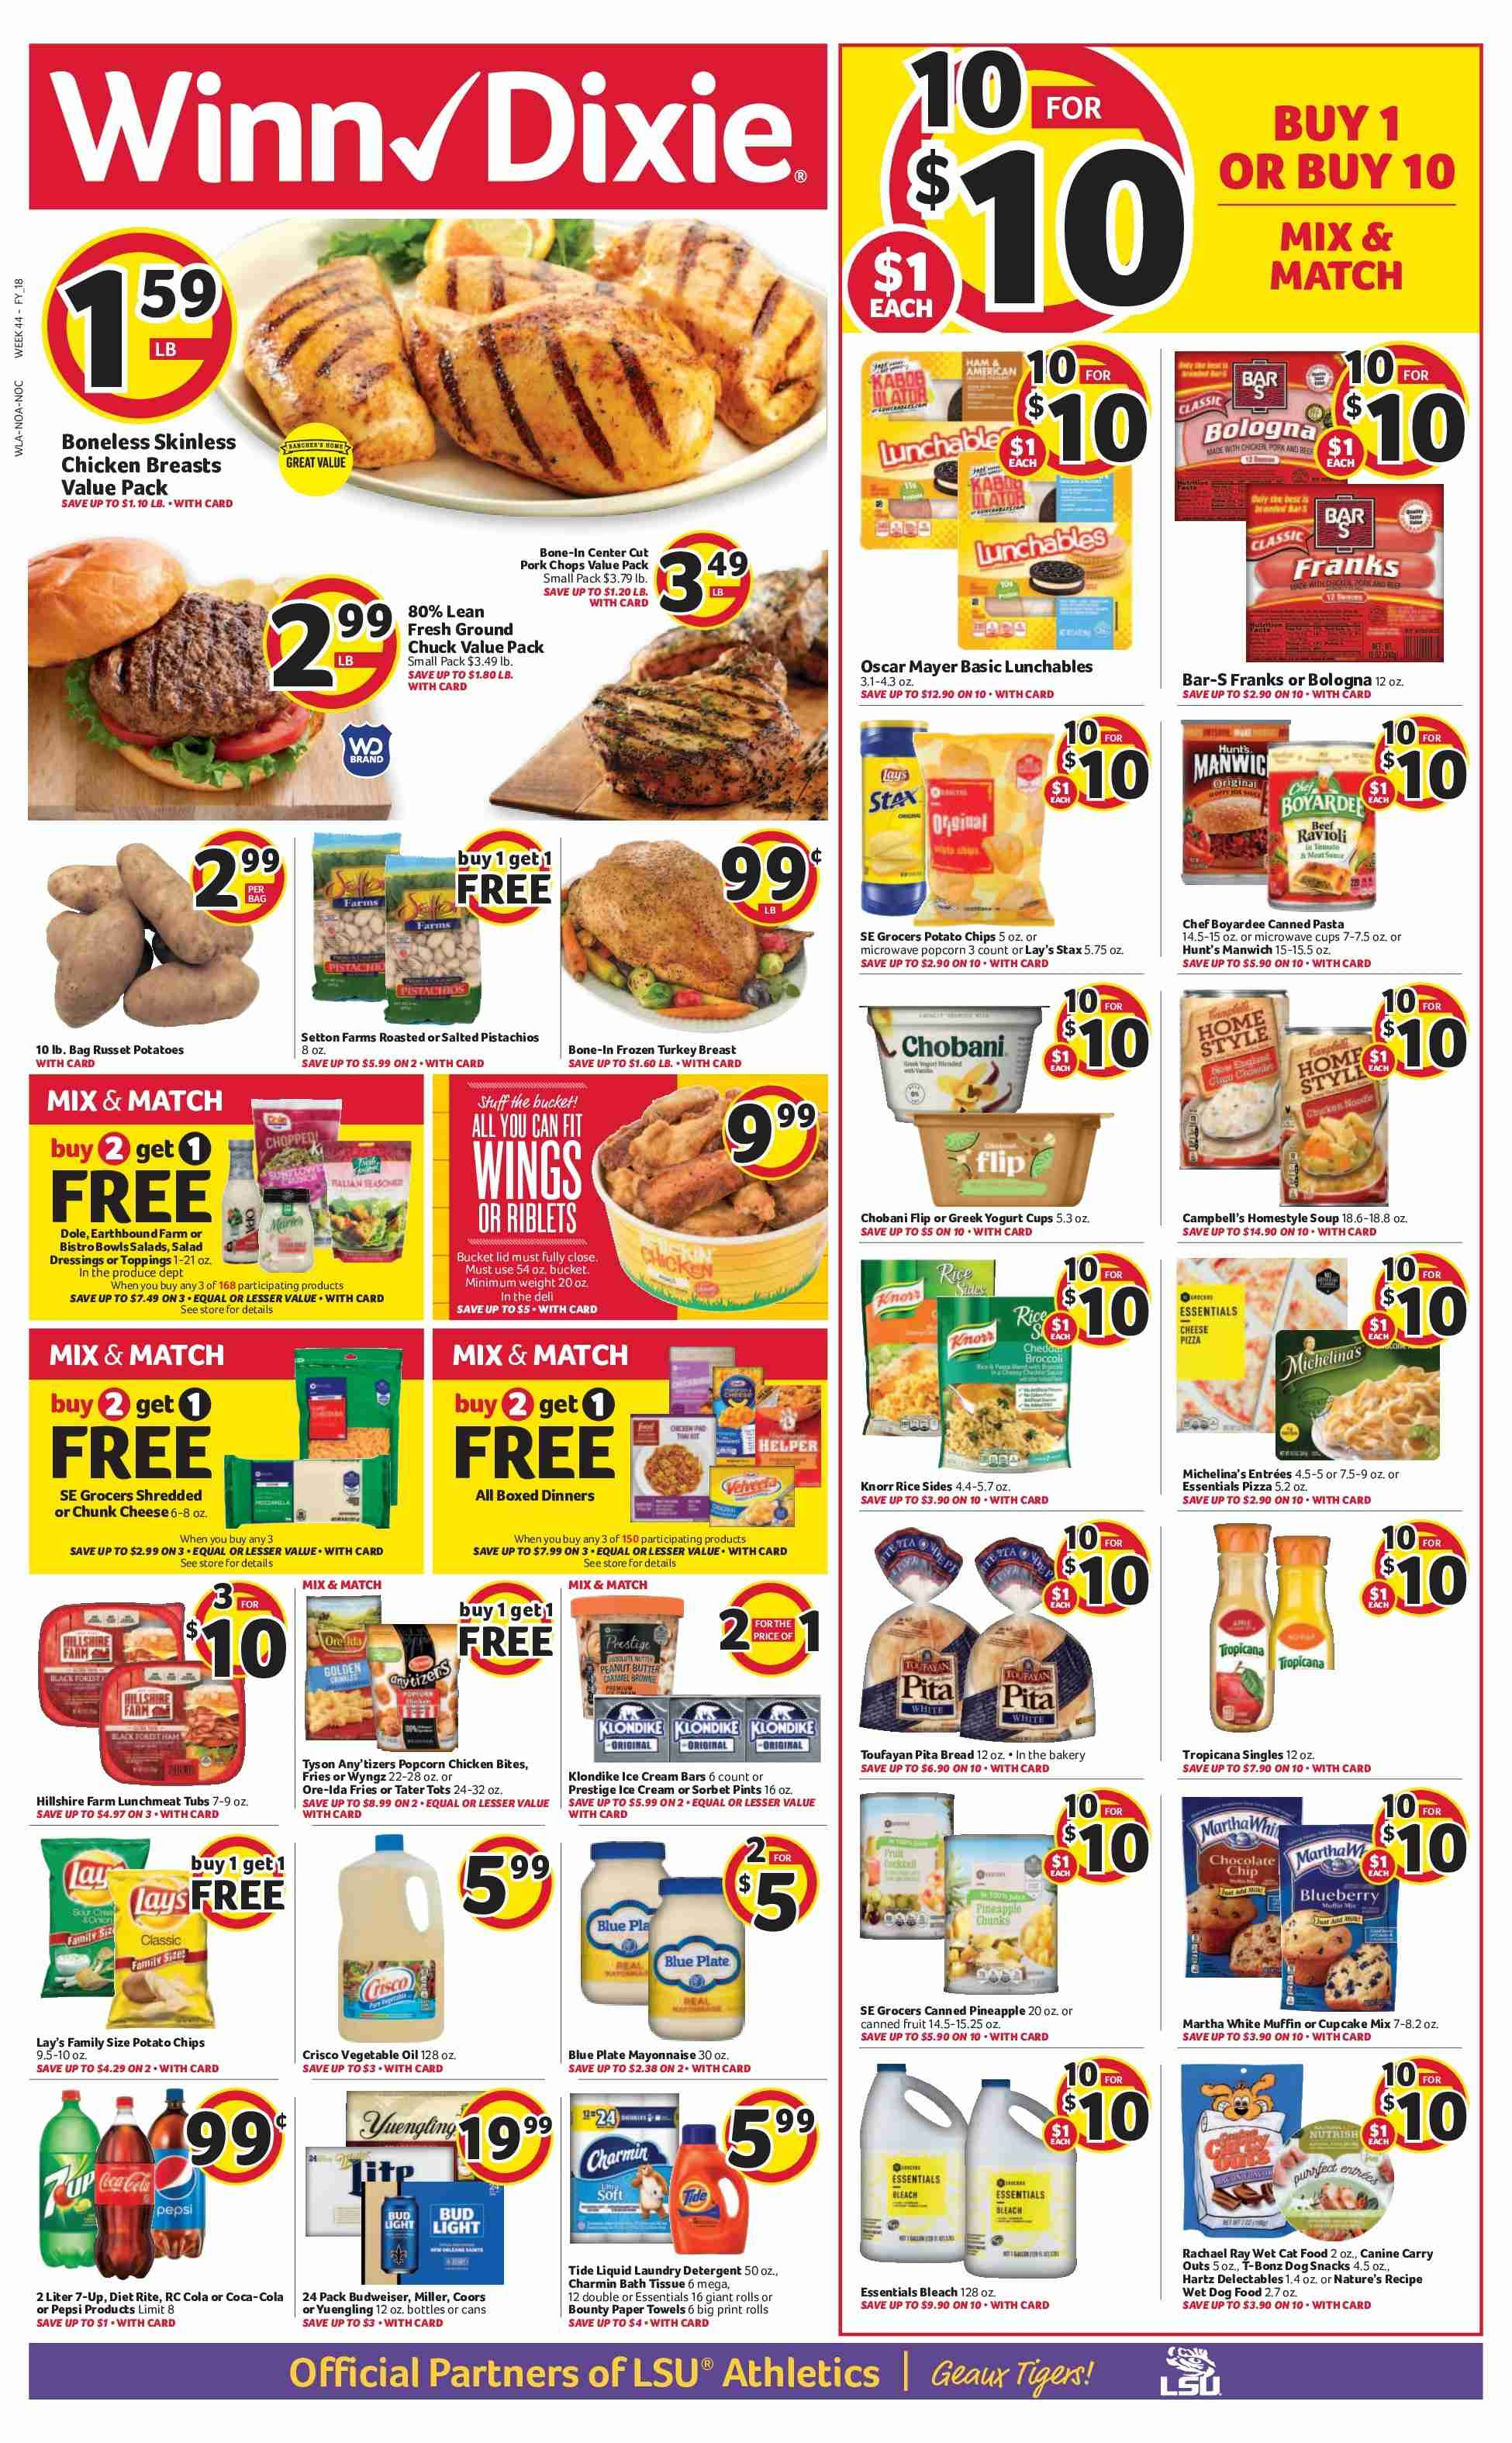 Winn Dixie Flyer - 10.24.2018 - 10.30.2018 - Sales products - animal food, bag, bath, bath tissue, bowl, budweiser, campbell's, cat food, coca-cola, cupcake, cupcakes, detergent, frozen, frozen turkey, greek yogurt, lunchmeat, microwave, ravioli, rice, russet potatoes, towel, turkey, turkey breast, yogurt, ice cream, ice cream bars, pita, pizza, plate, popcorn, potato chips, potatoes, chicken, paper towel, pepsi, chips. Page 1.